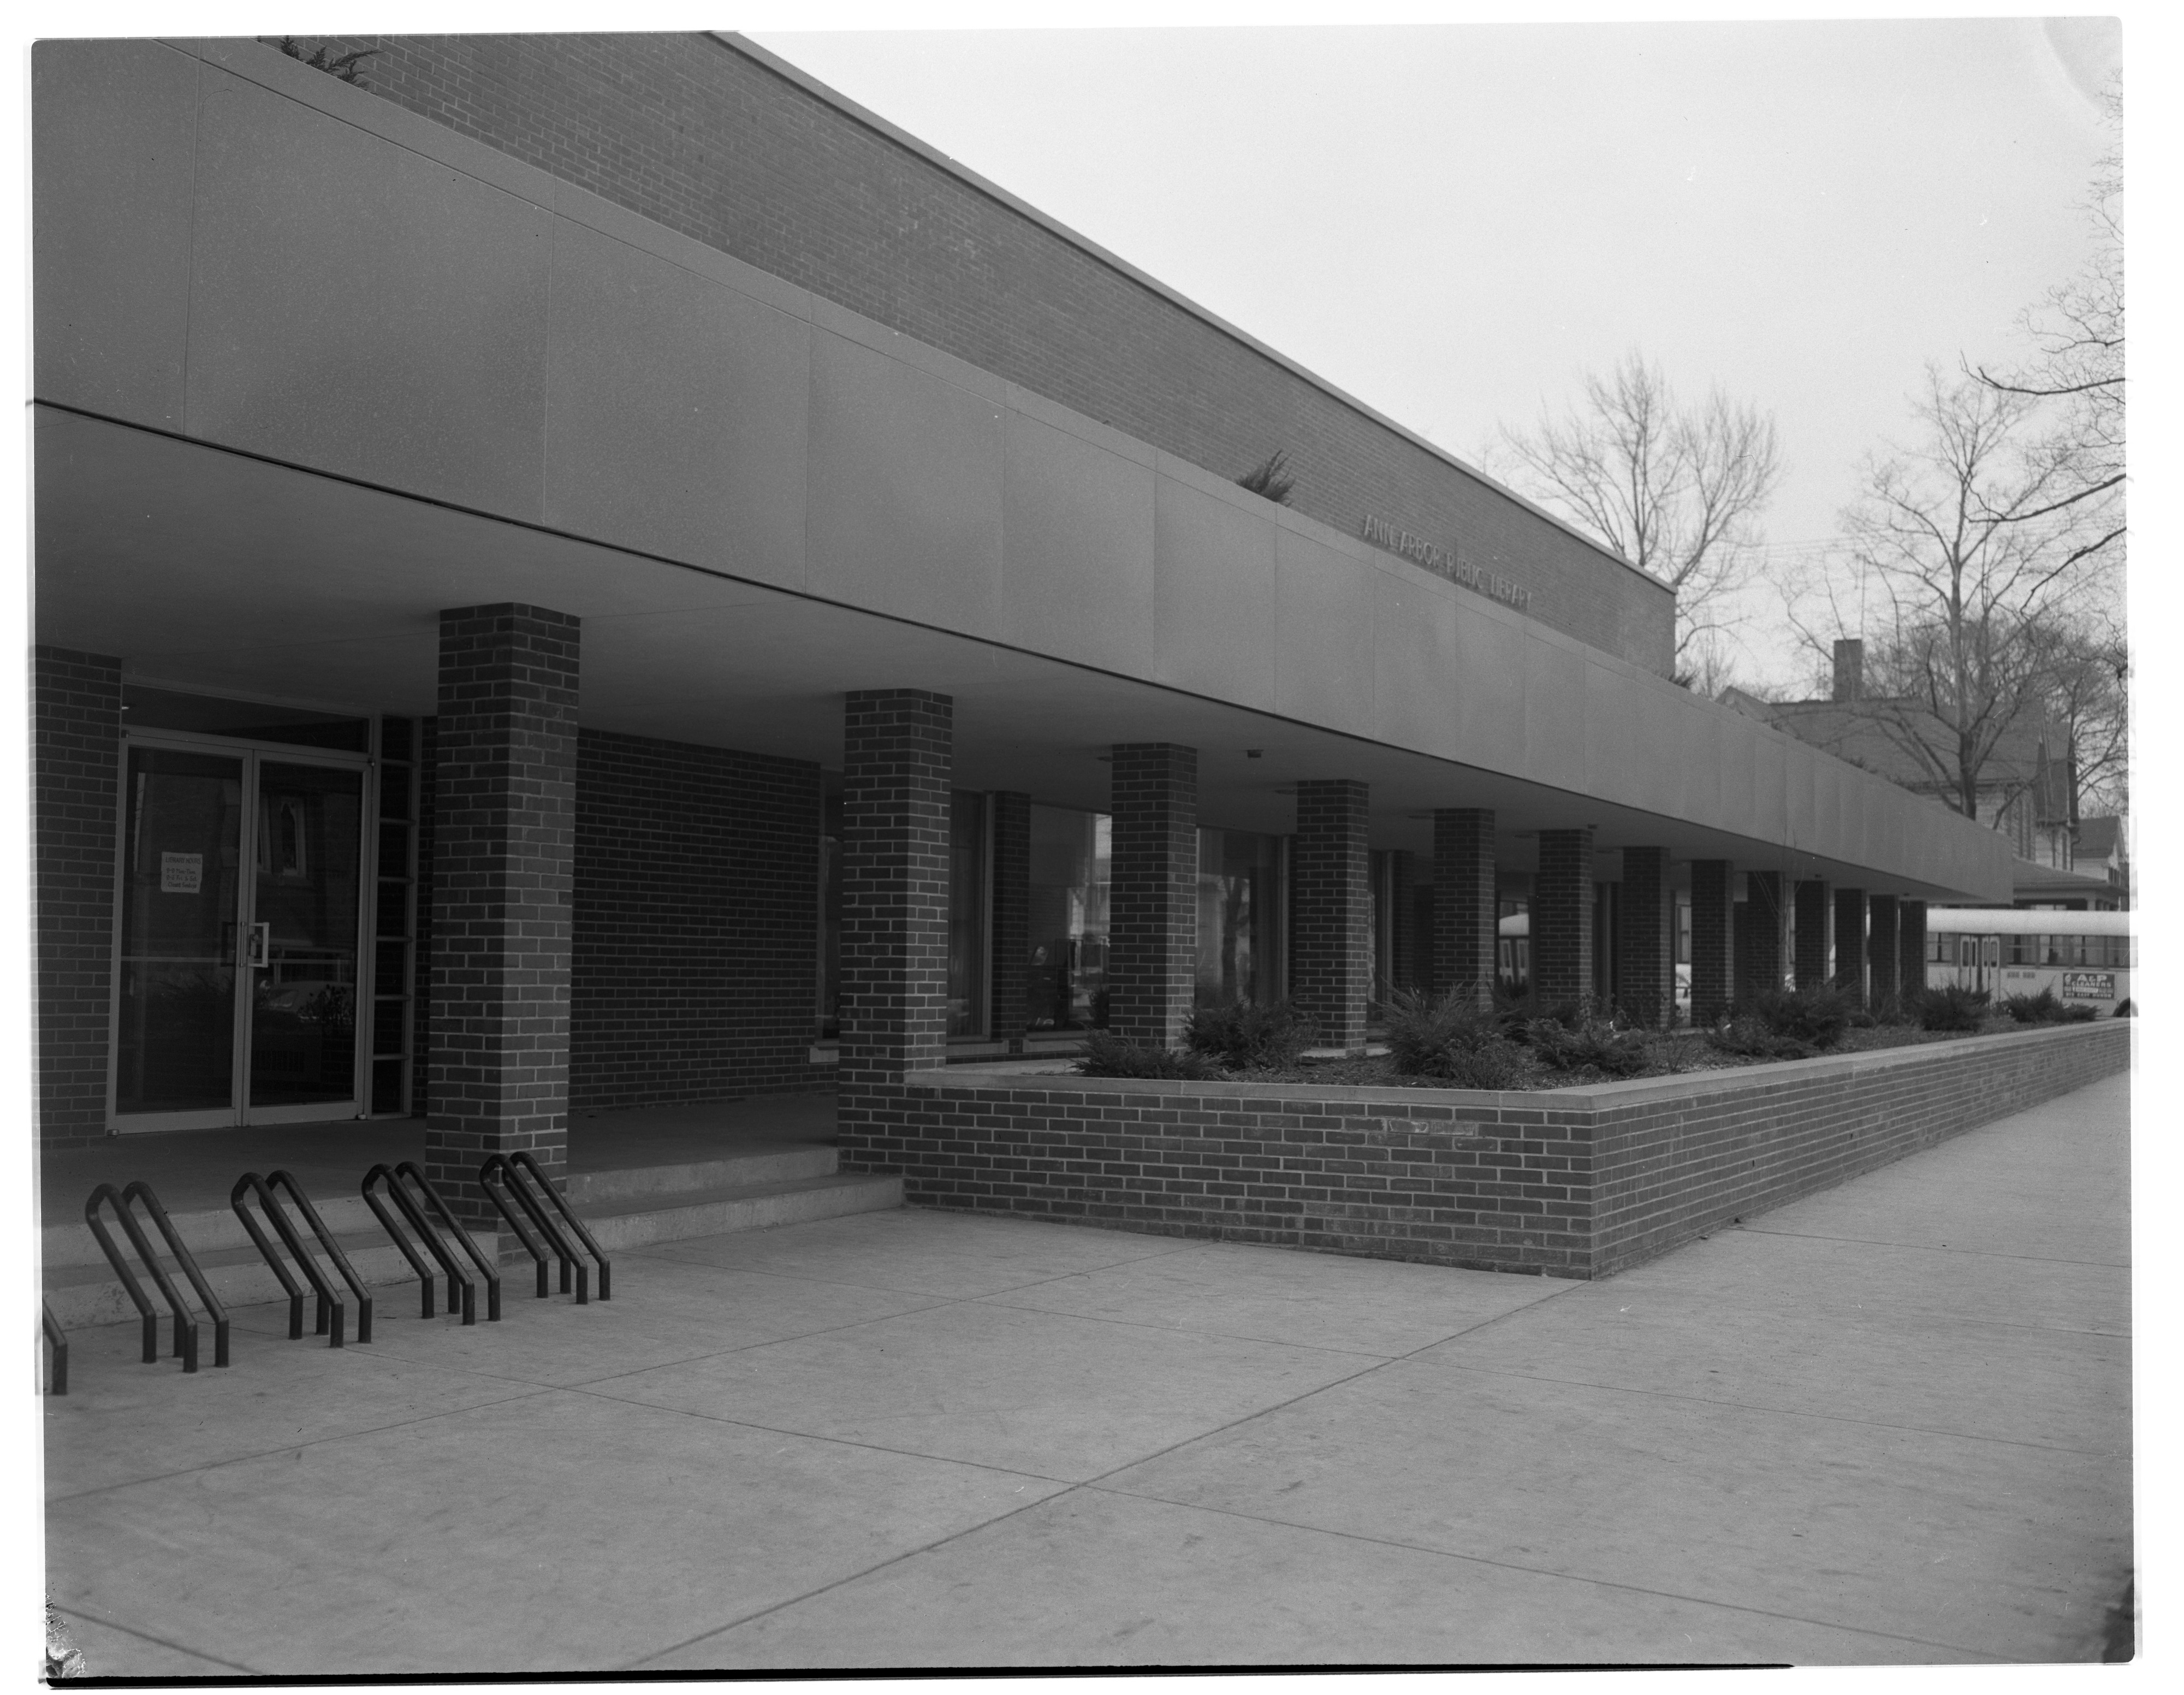 Ann Arbor Public Library Exterior Landscaping, March 1958 image